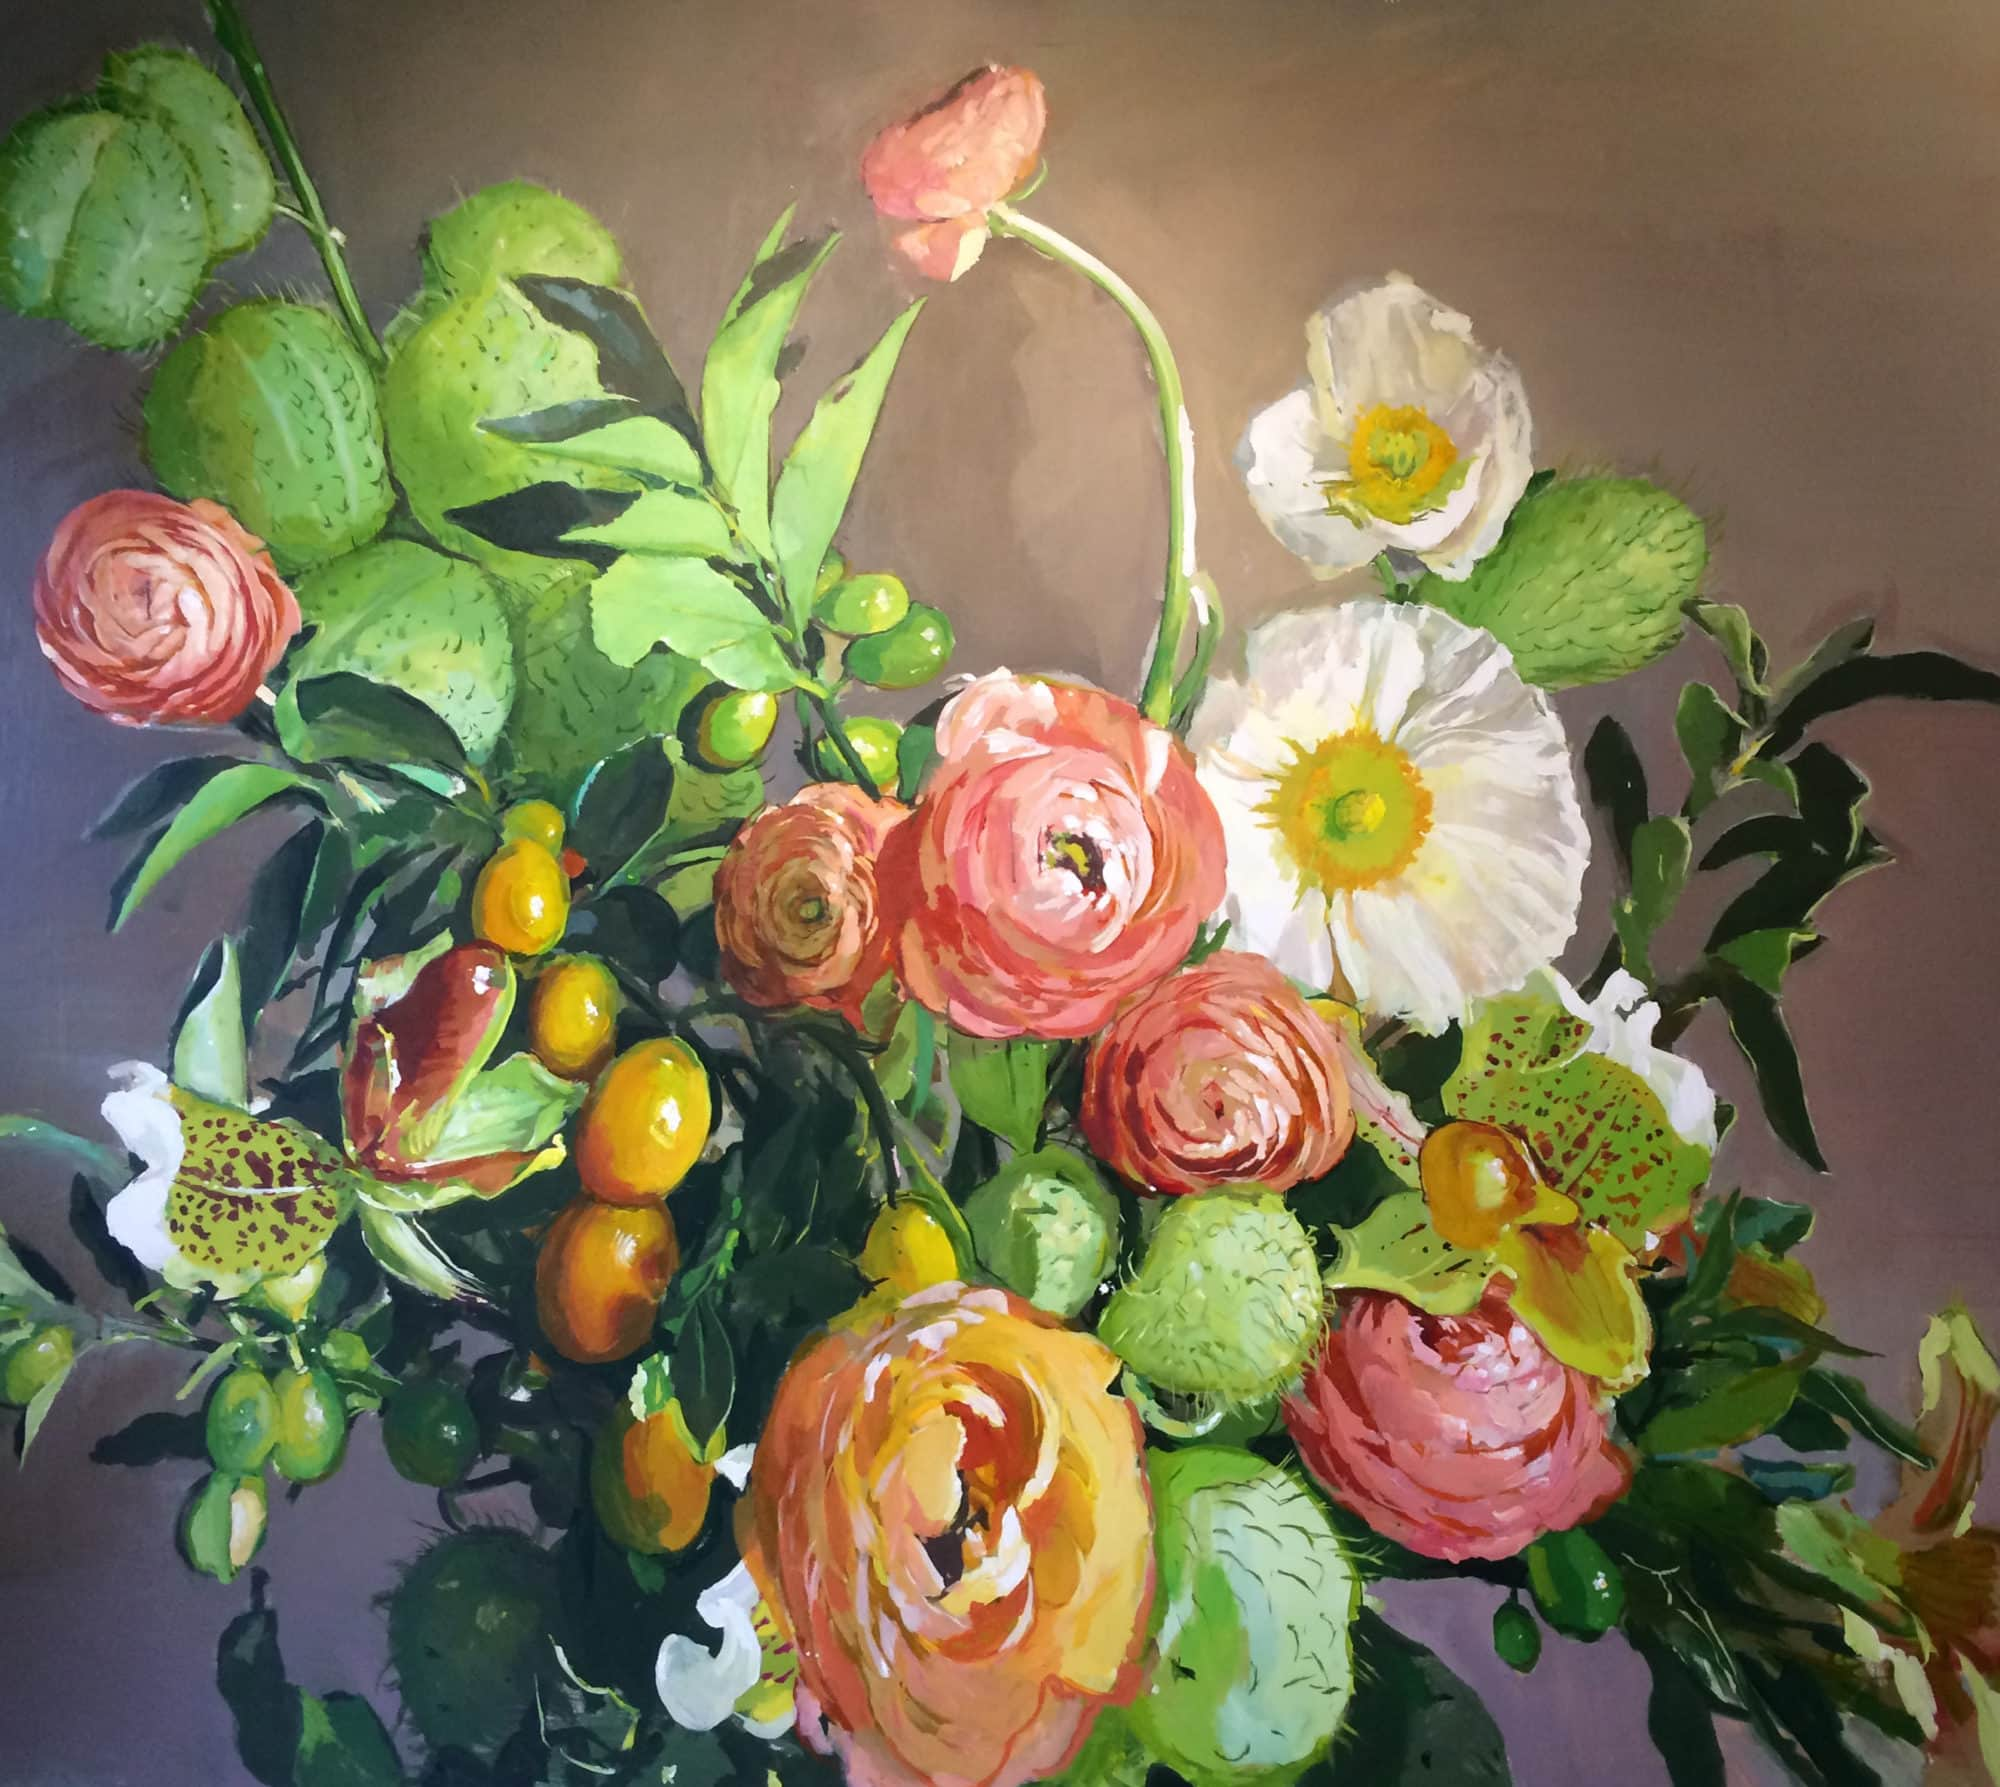 Michael Harnish_Bouquet II_84 x 96 inches_oil